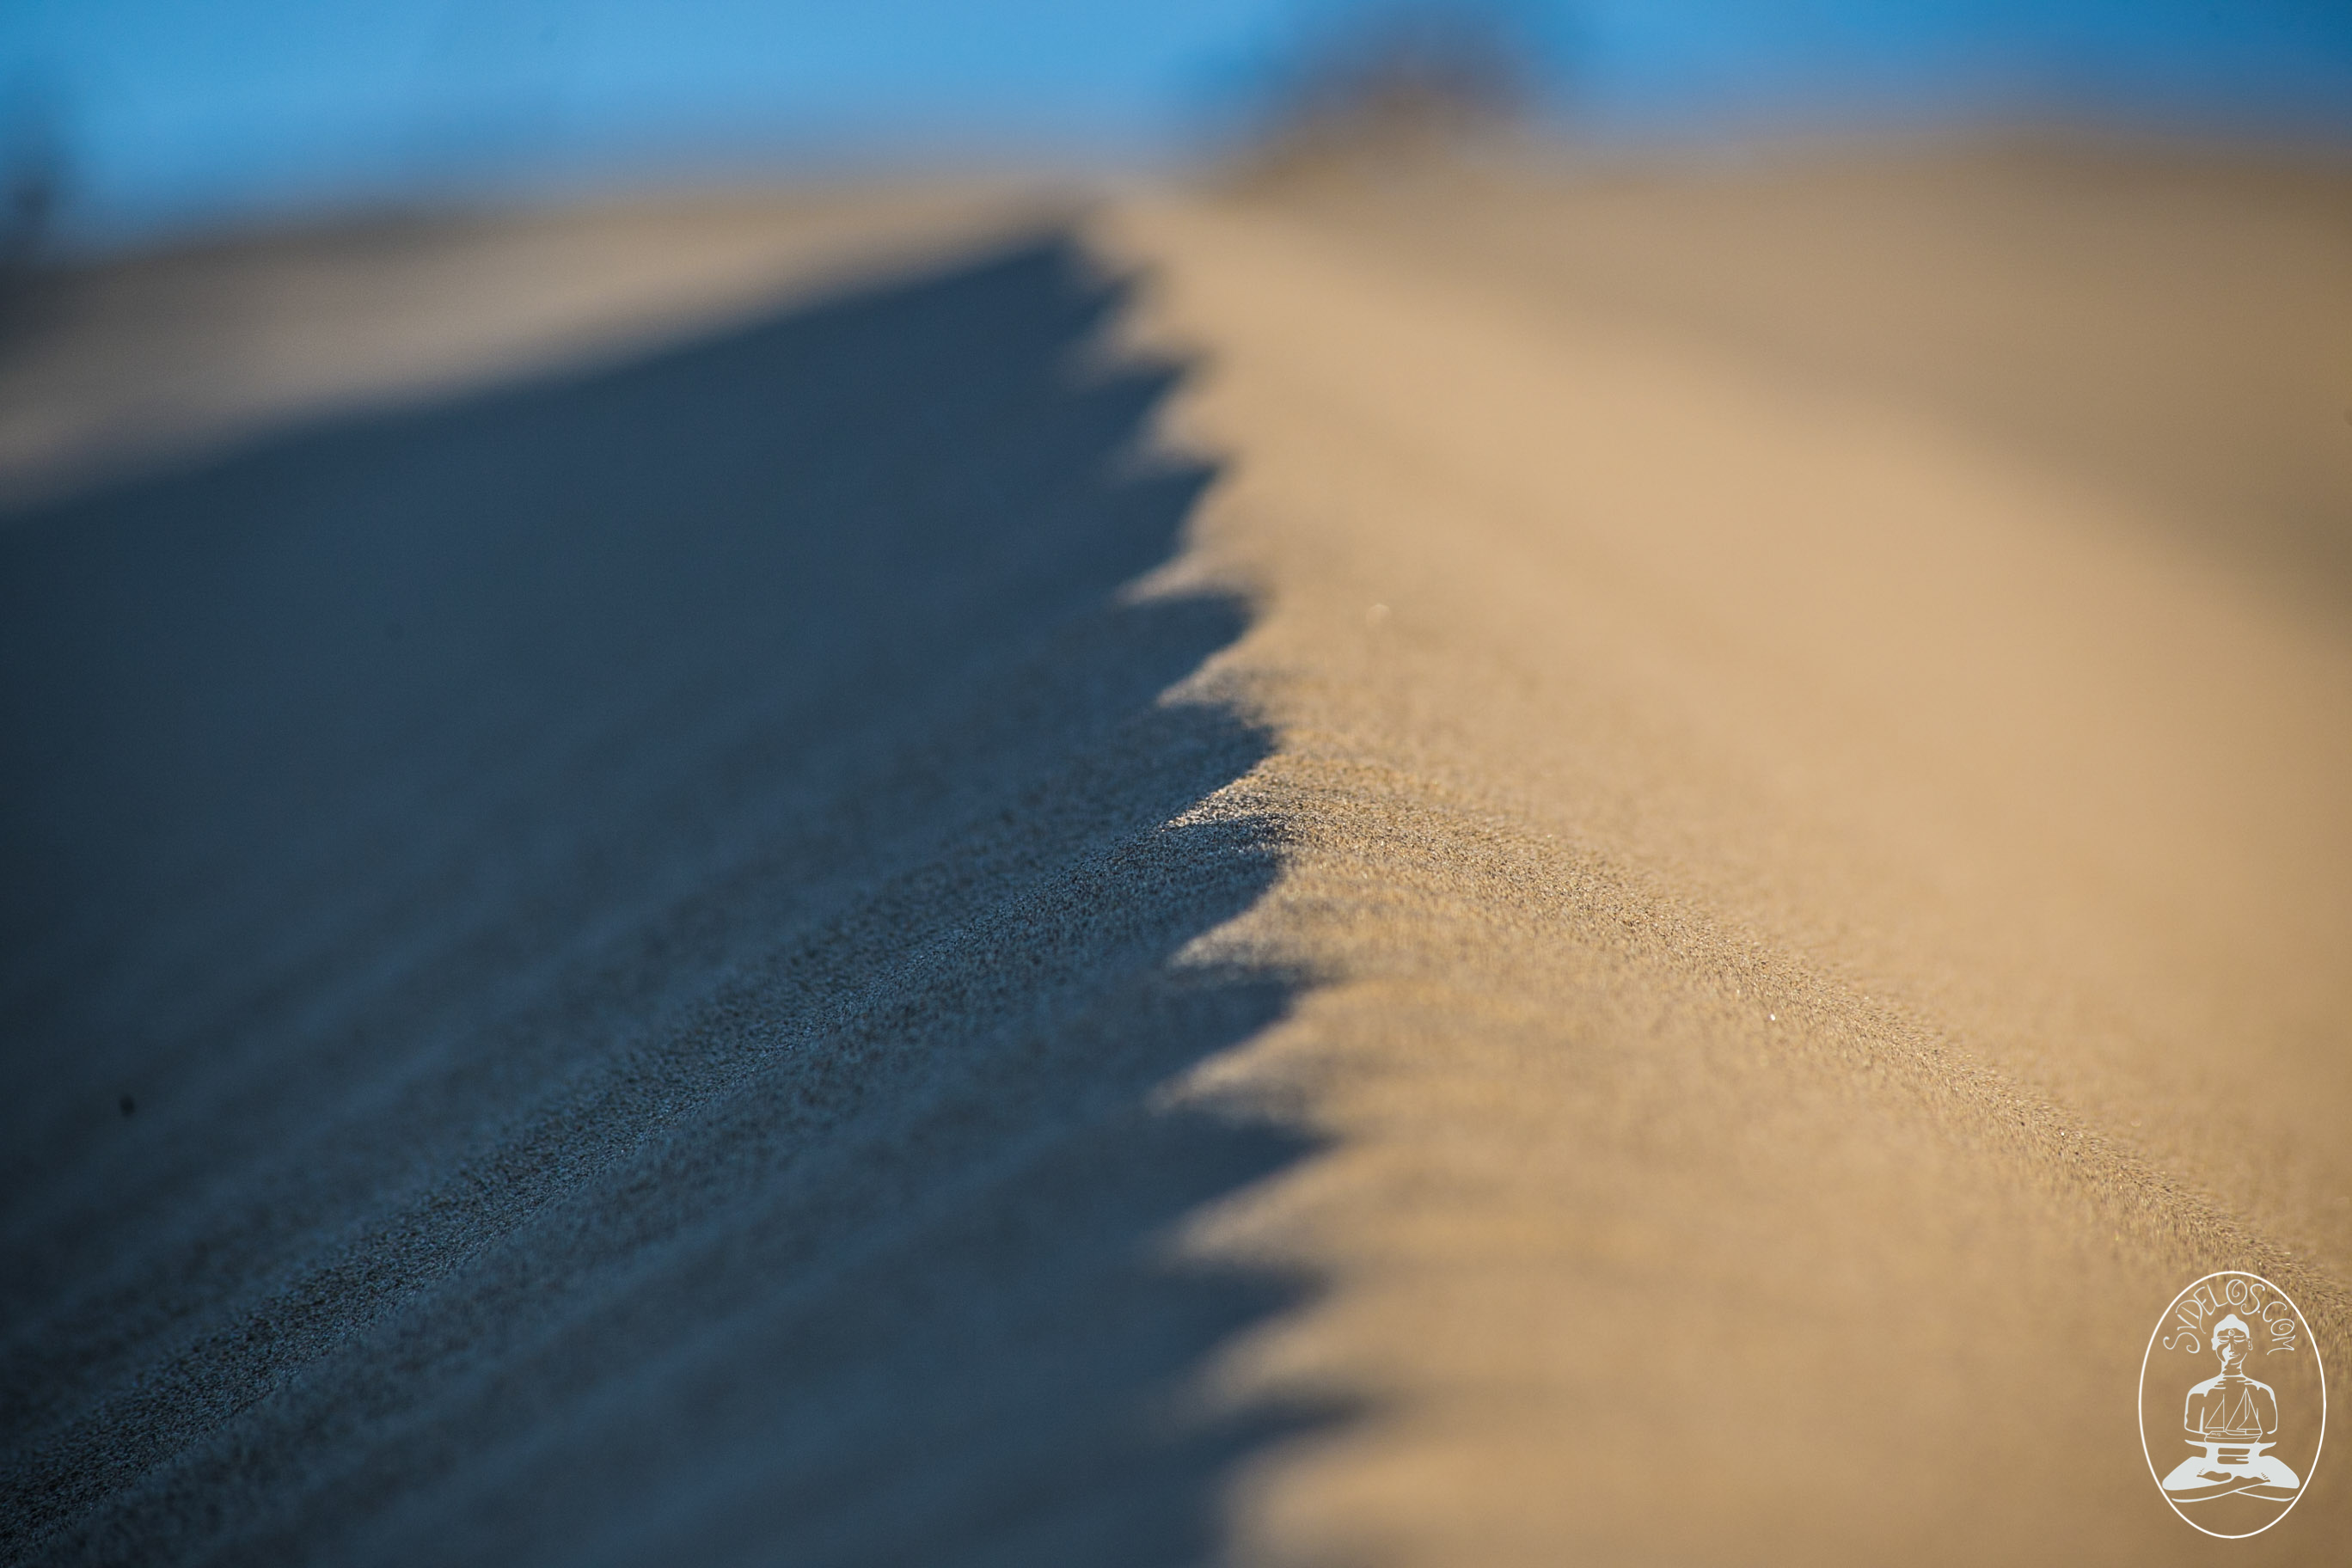 sand dune macro close up desktop background